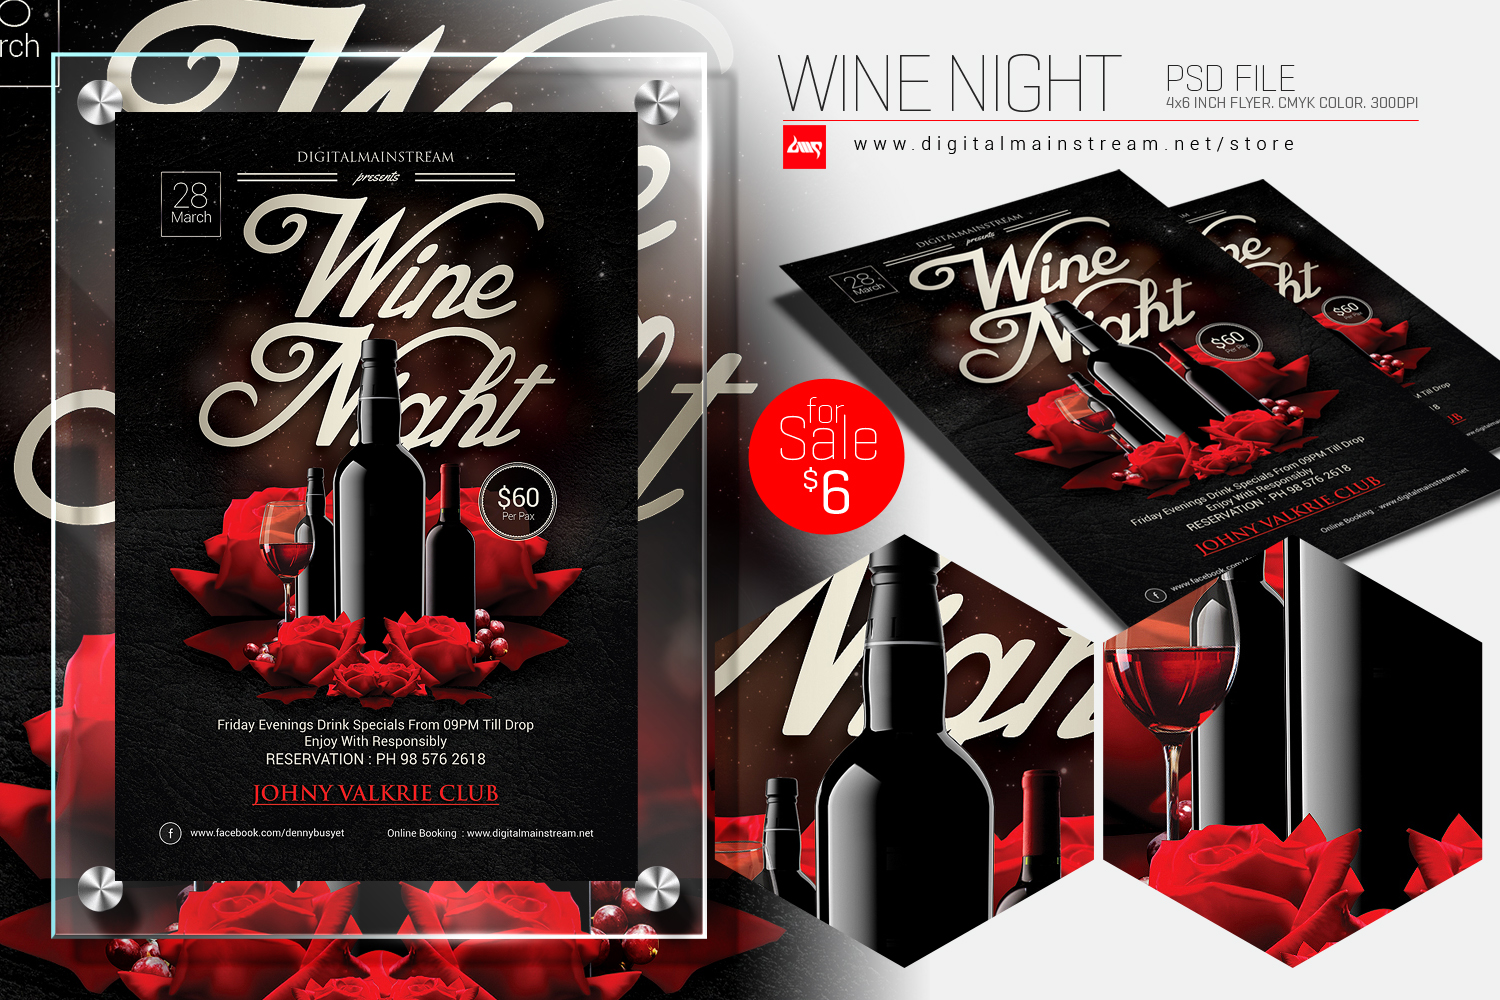 Wine Night Invitation Flyer Template By Dennybusyet On